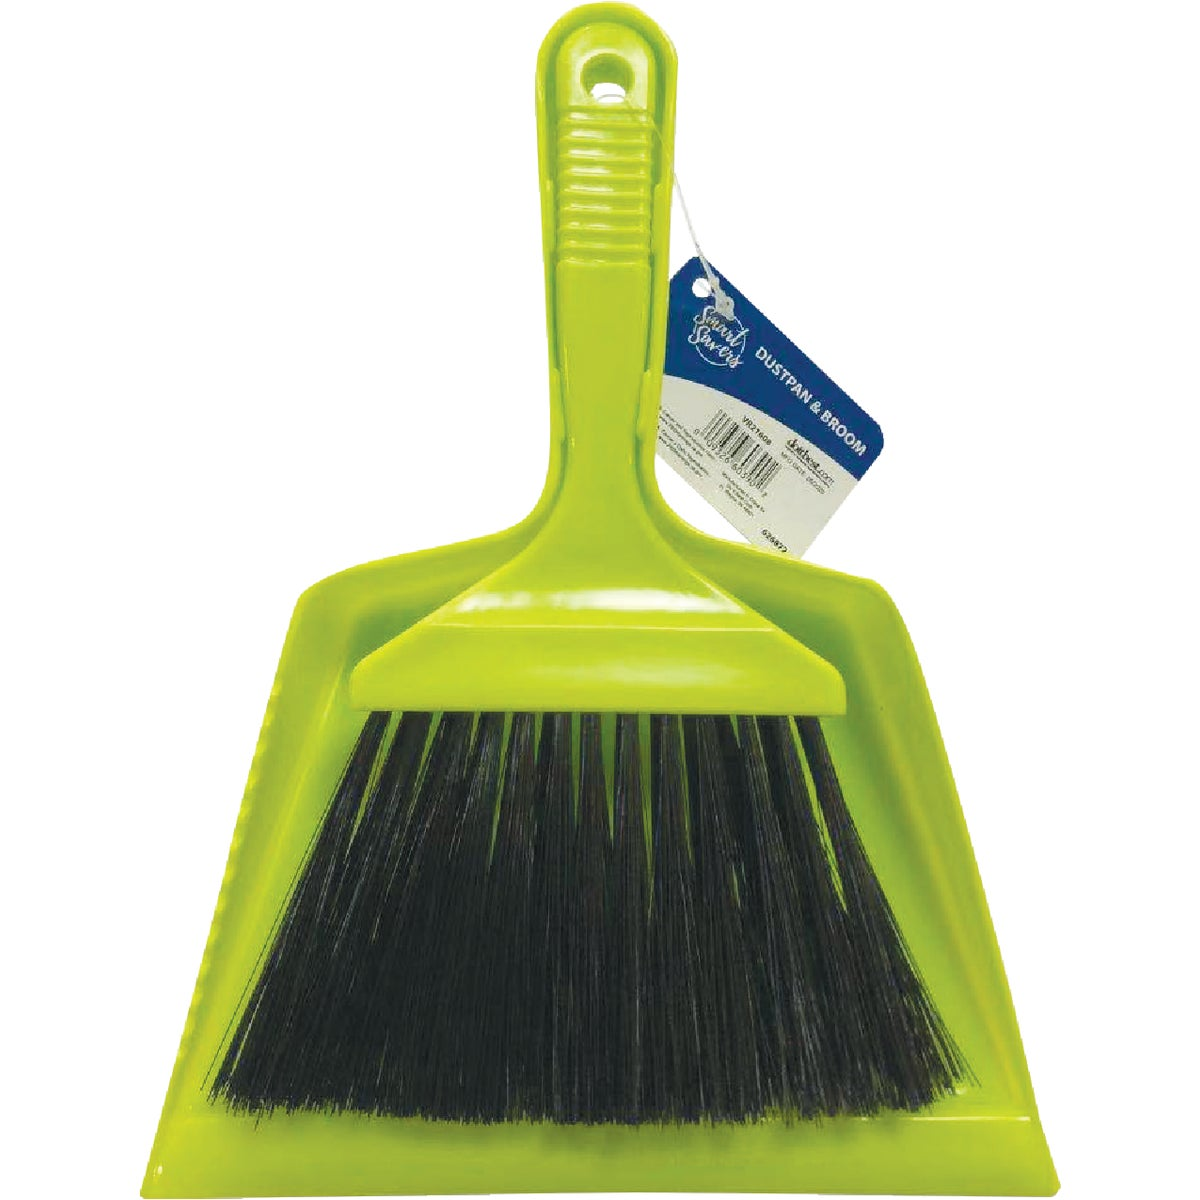 DUSTPAN AND BROOM